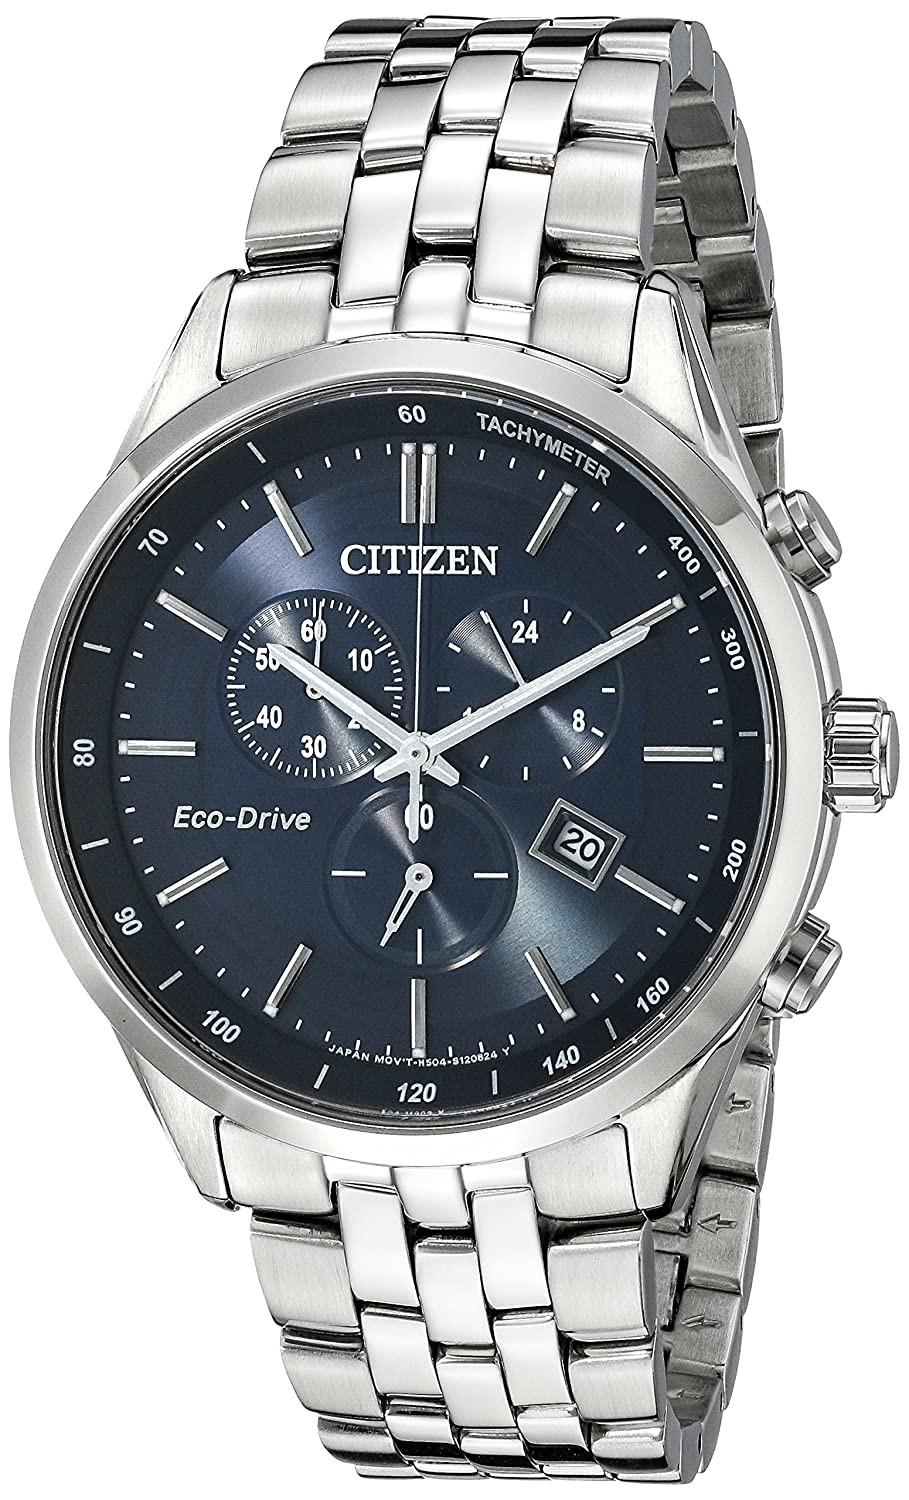 a7ba52391ab2 Amazon.com  Citizen Men s Eco-Drive Chronograph Stainless Steel Watch with  Date